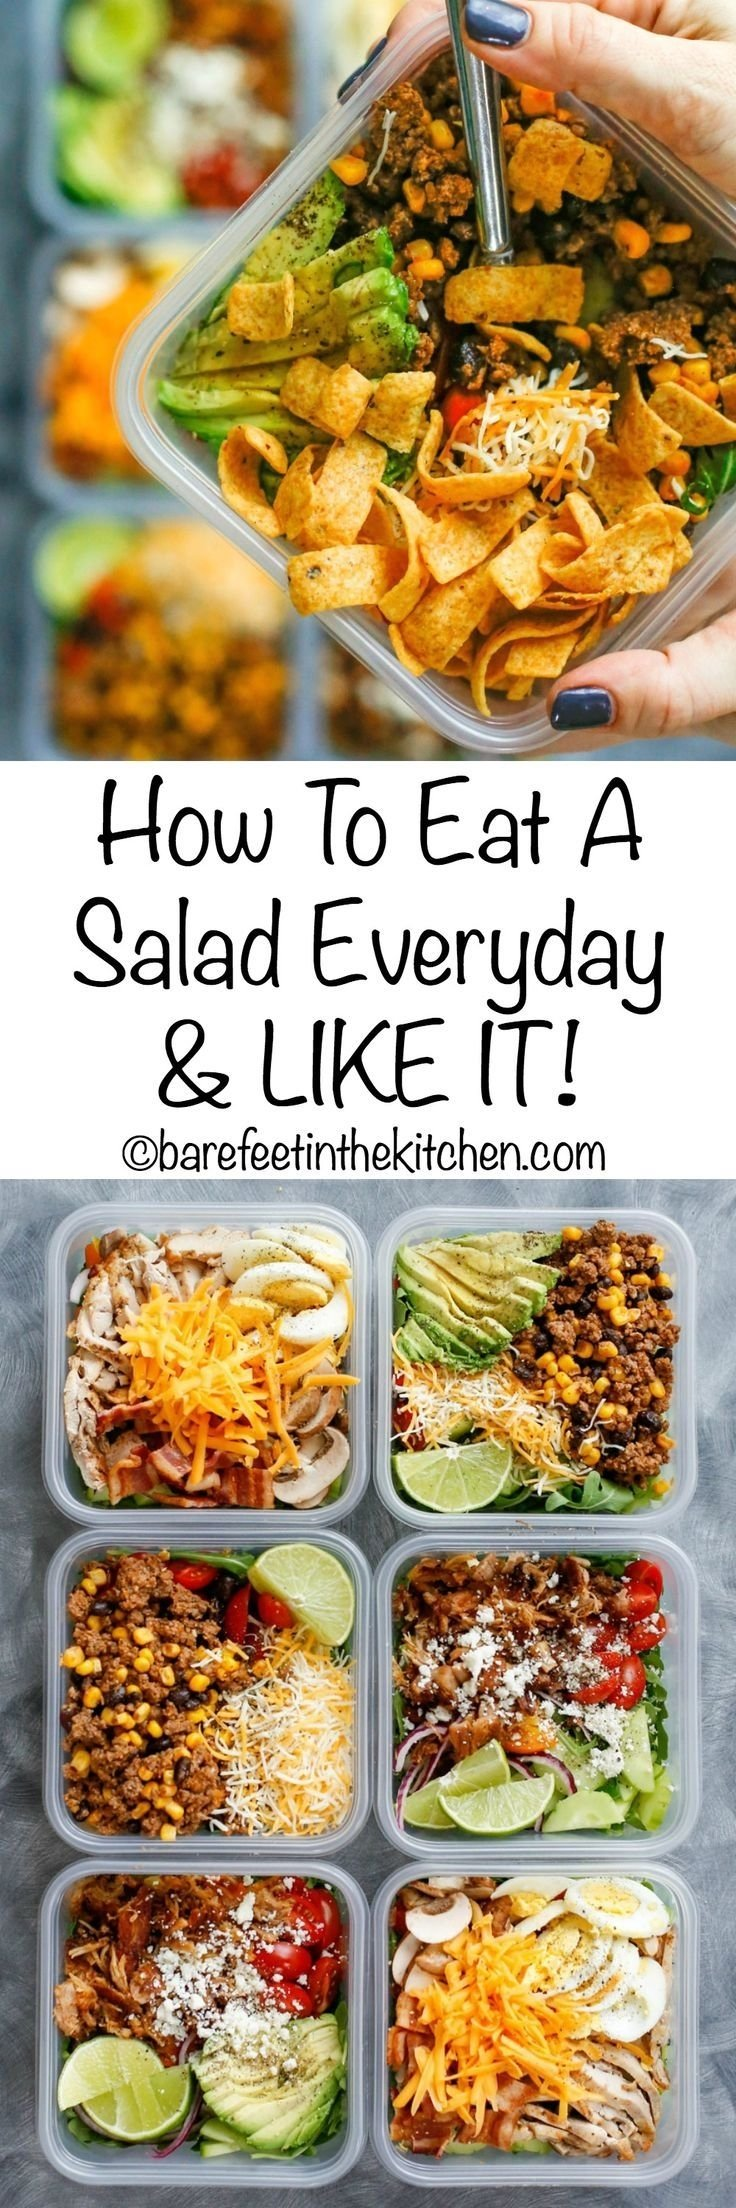 10 Awesome Food Day At Work Ideas 40 best lunch ideas images on pinterest cooking food healthy eats 3